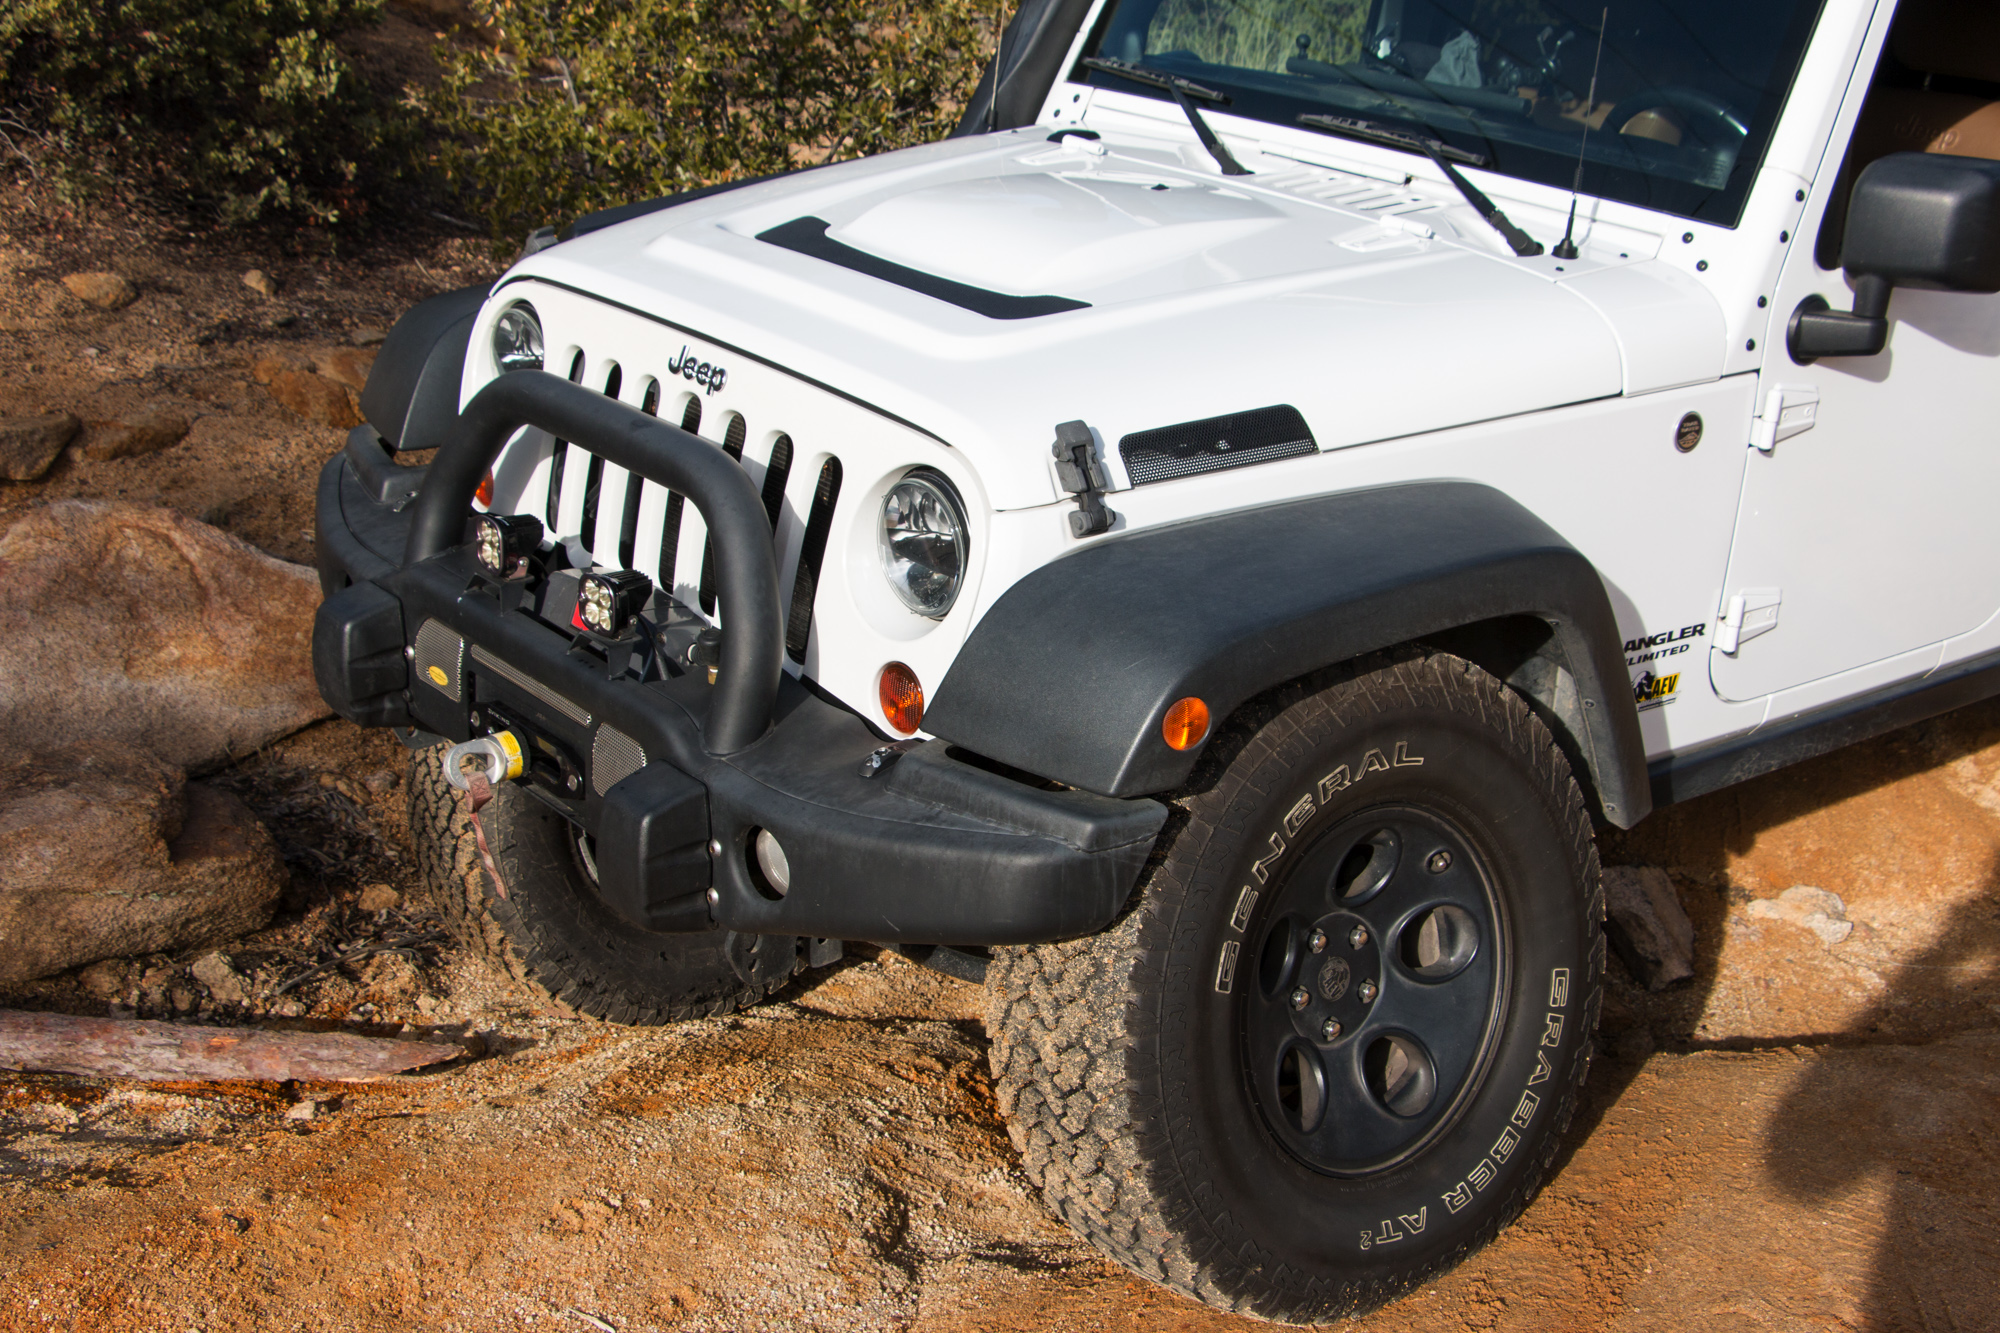 jeep jk essay Enter our scholarship program by writing a short essay about environmentally responsible outdoor adventures, and win a $500 scholarship.